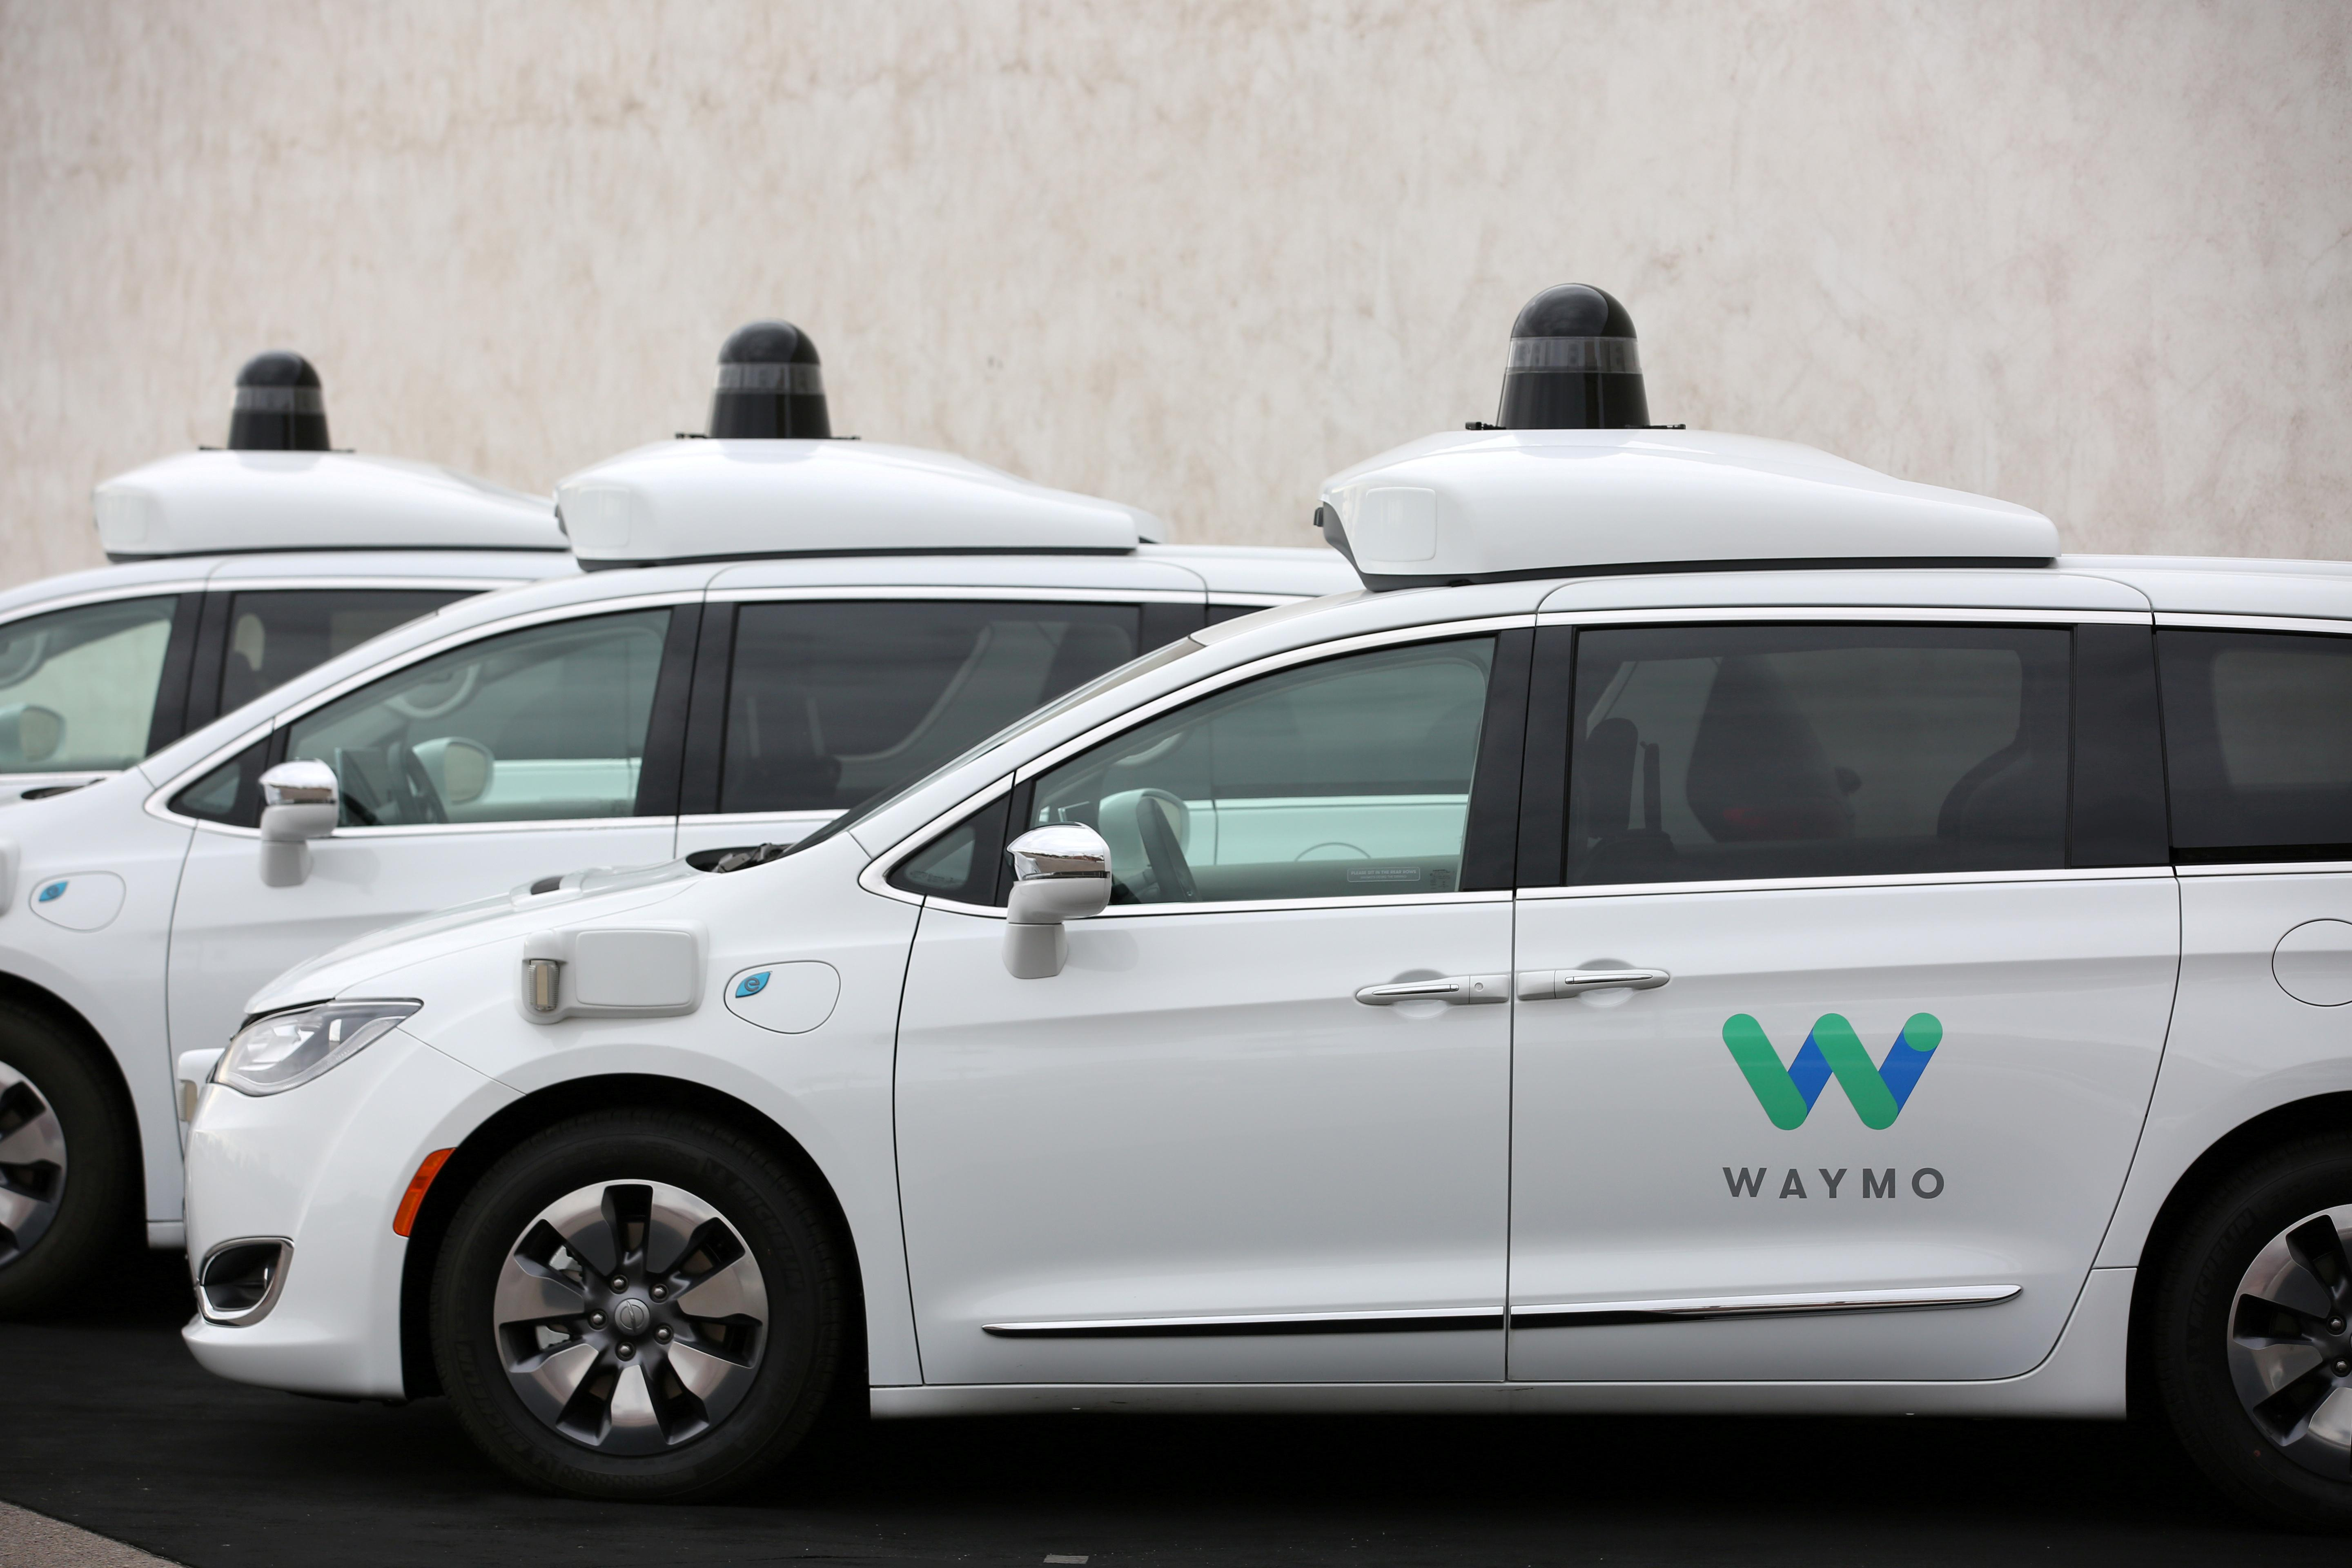 Waymo urges U.S. to 'promptly' remove barriers to self-driving cars